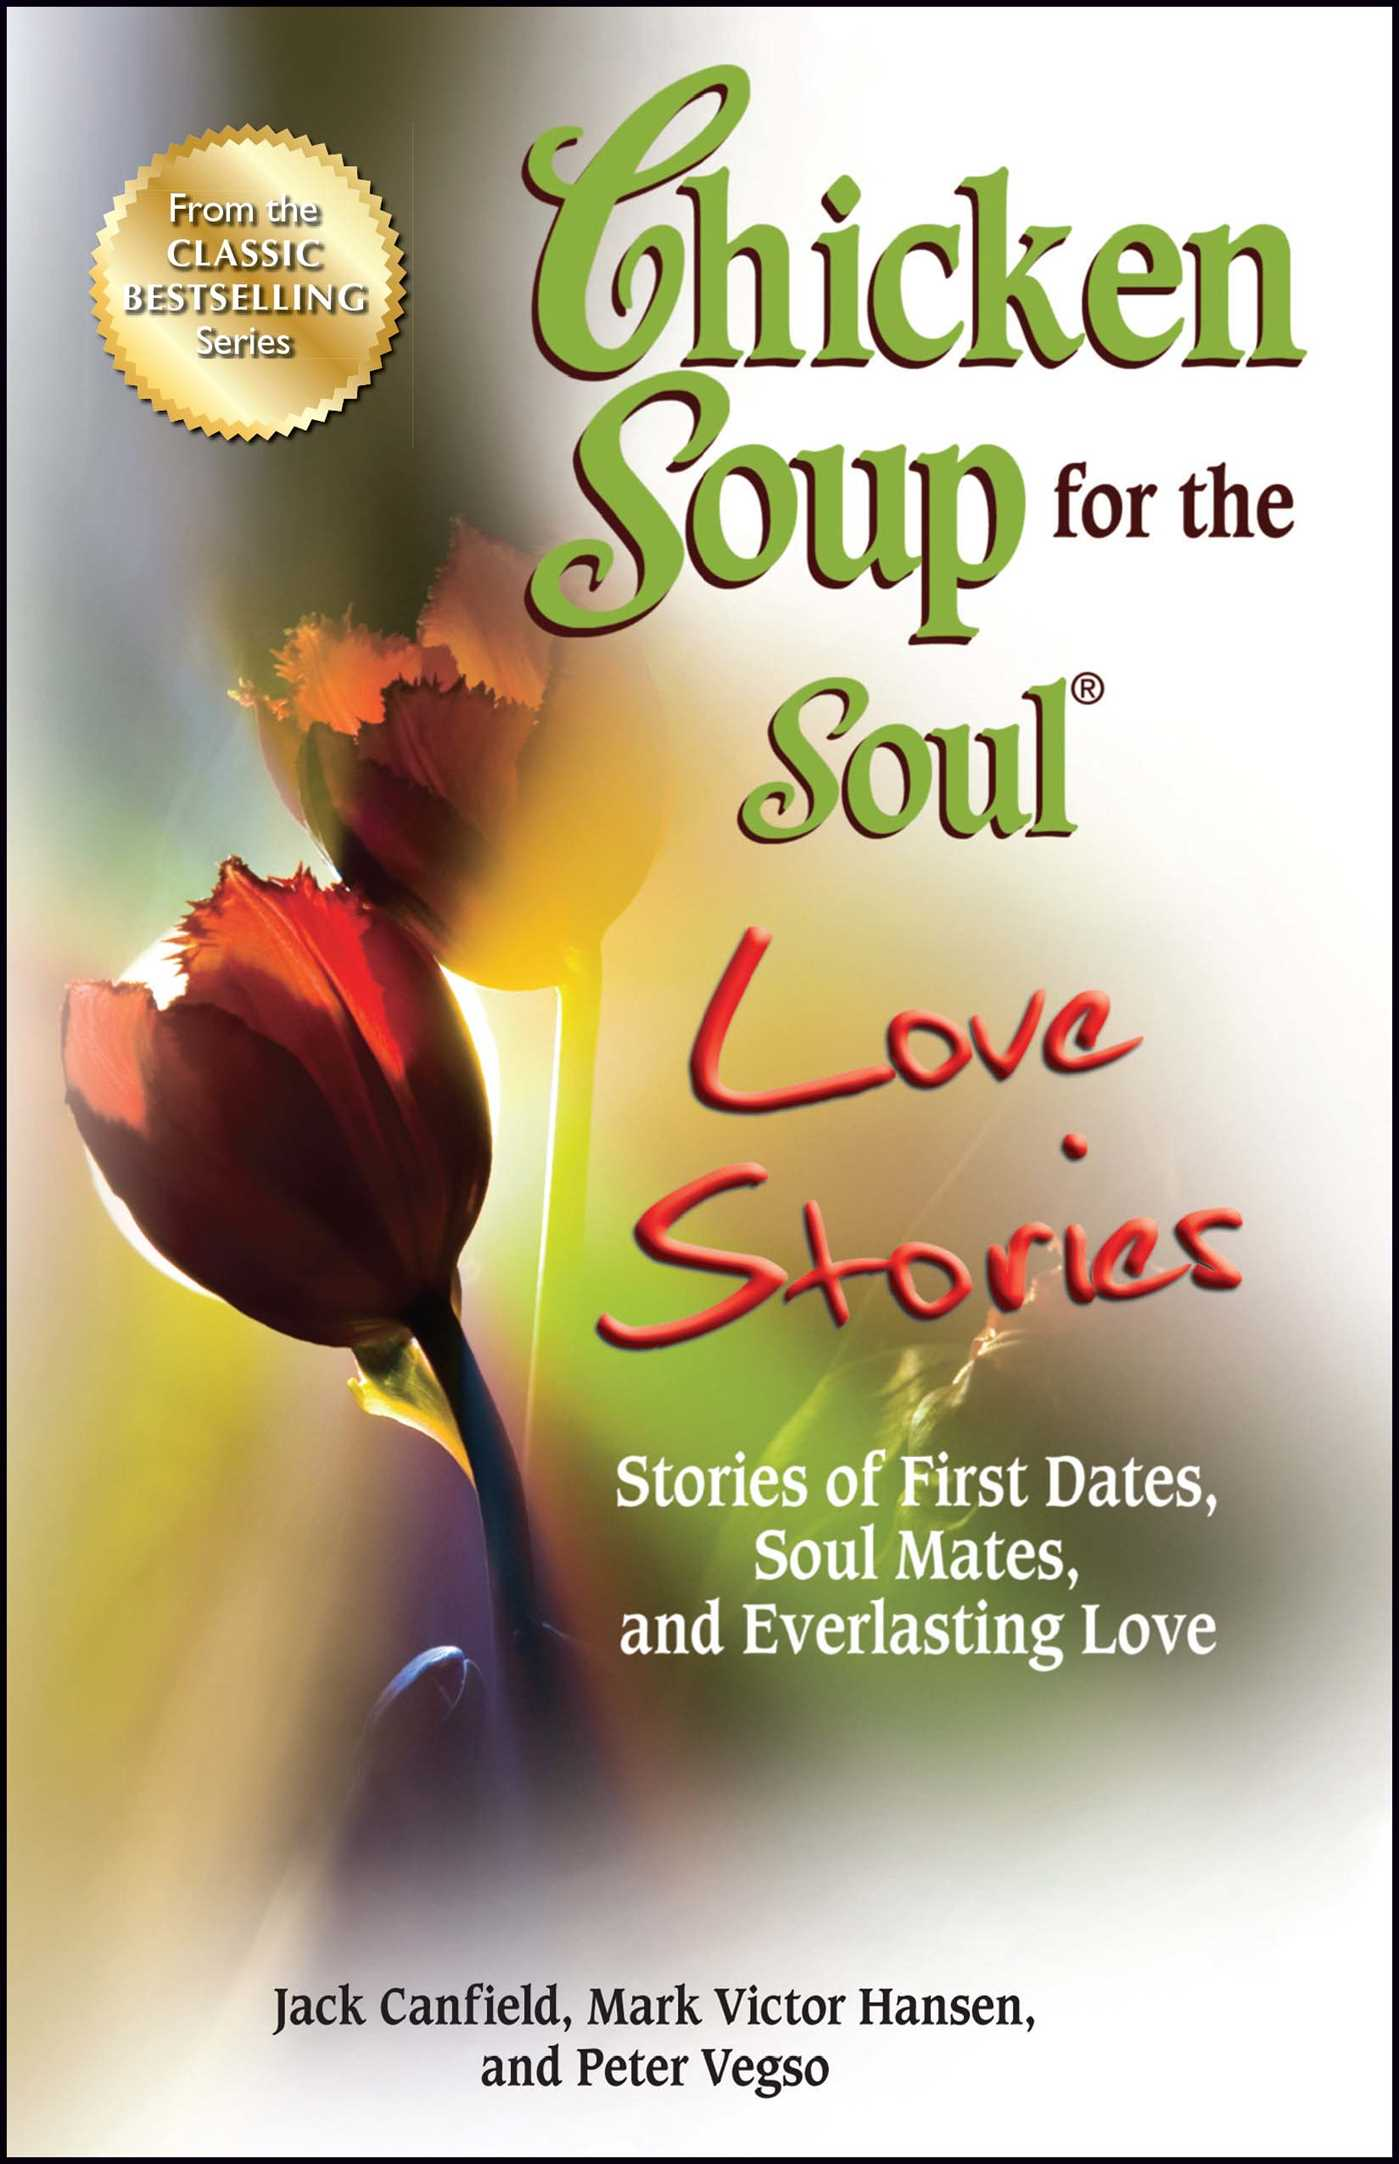 Chicken soup for the soul love stories 9781623610746 hr